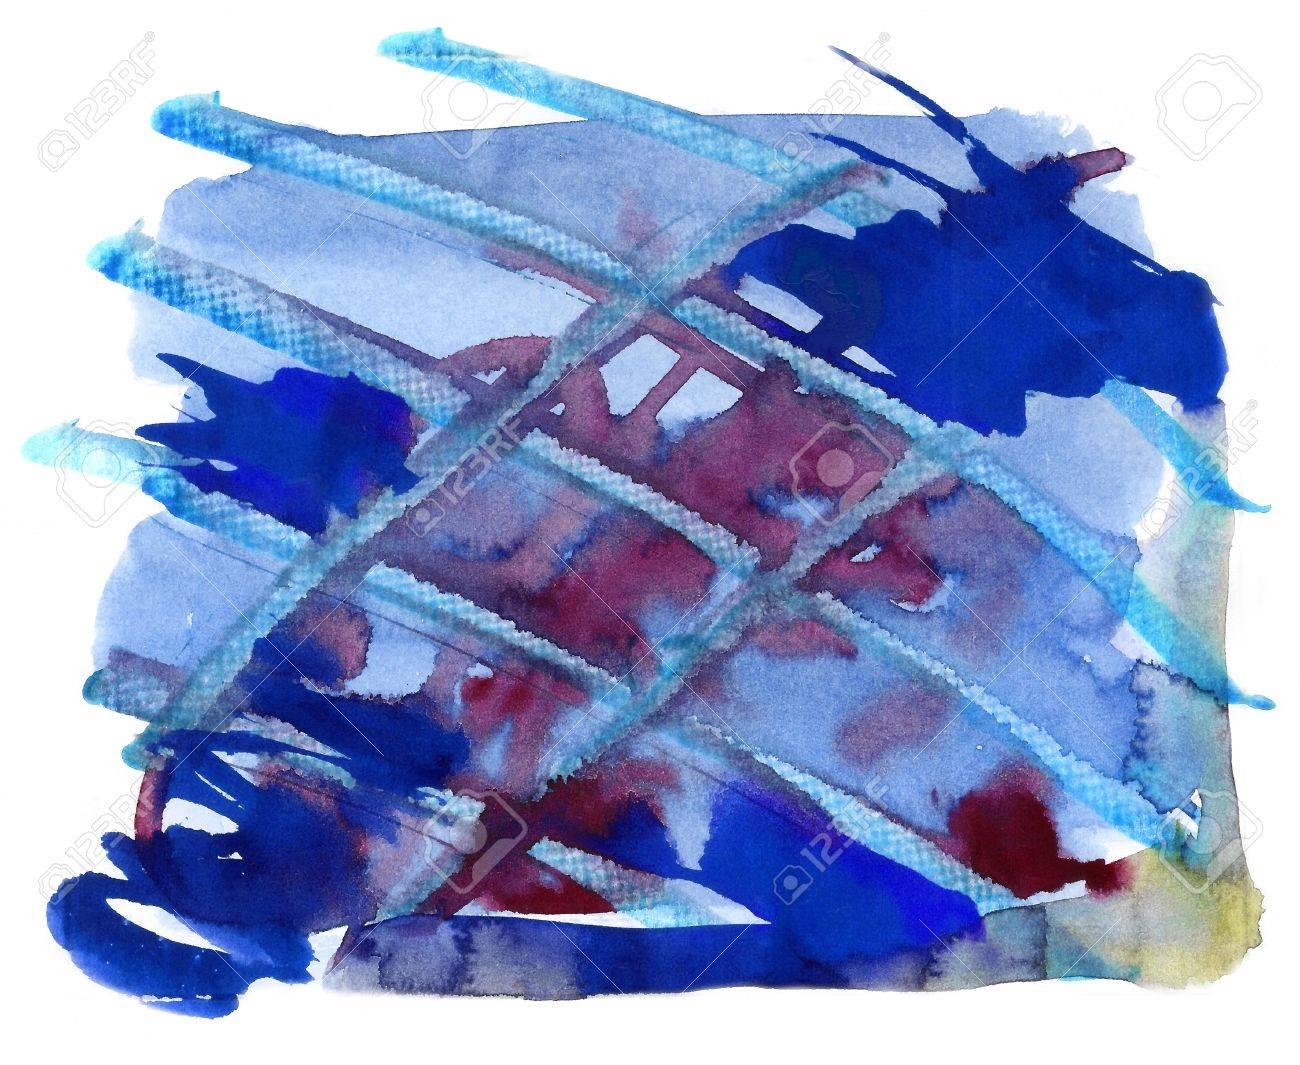 Abstract watercolor handmade effect Stock Photo - 13789790